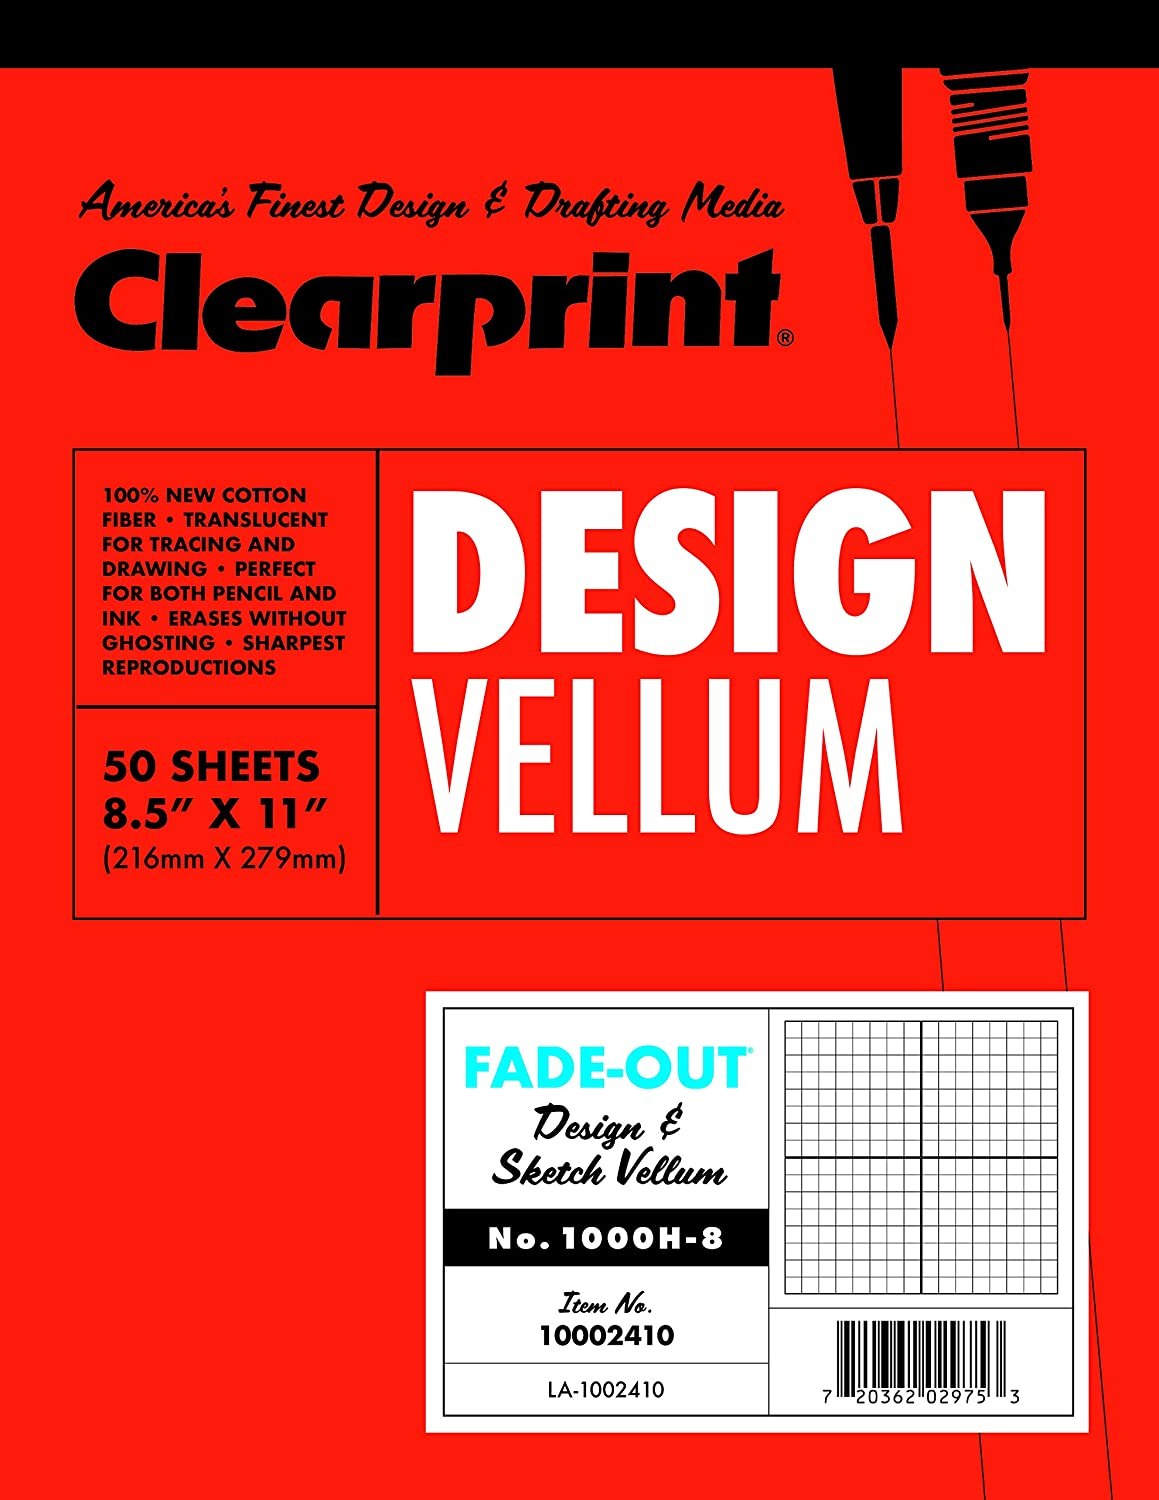 11x17 Inches 1000H 100/% Cotton 16 LB 26321641511 60 GSM 50 Translucent White Sheets 1 Each Clearprint Vellum Pad with 8x8 Fade-Out Grid